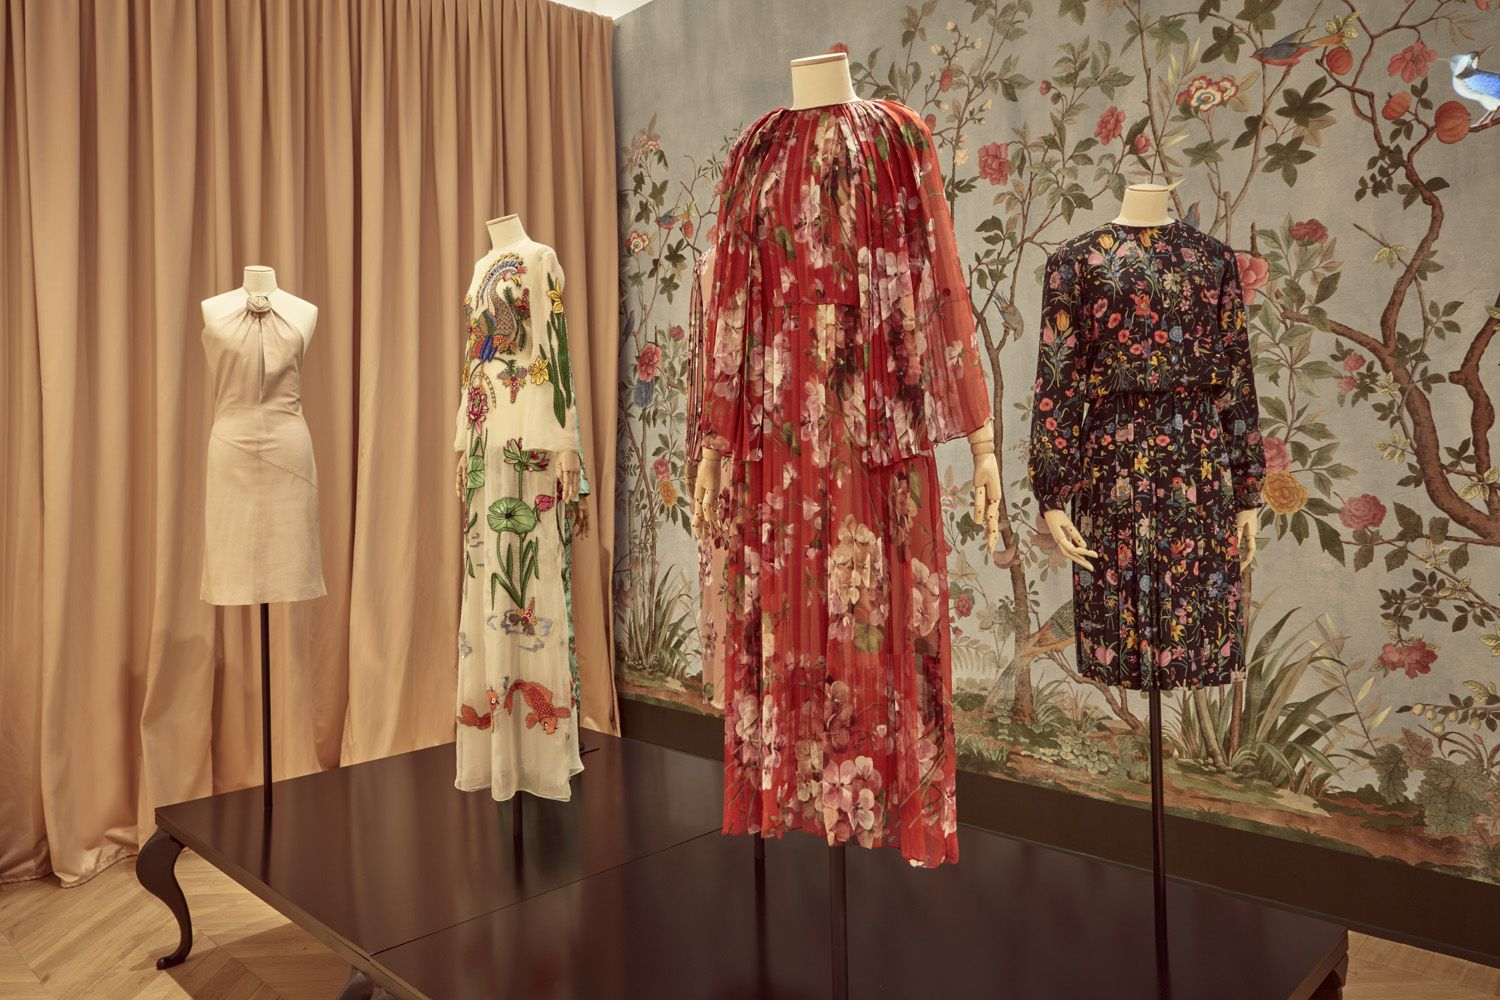 Gucci Garden exhibition display